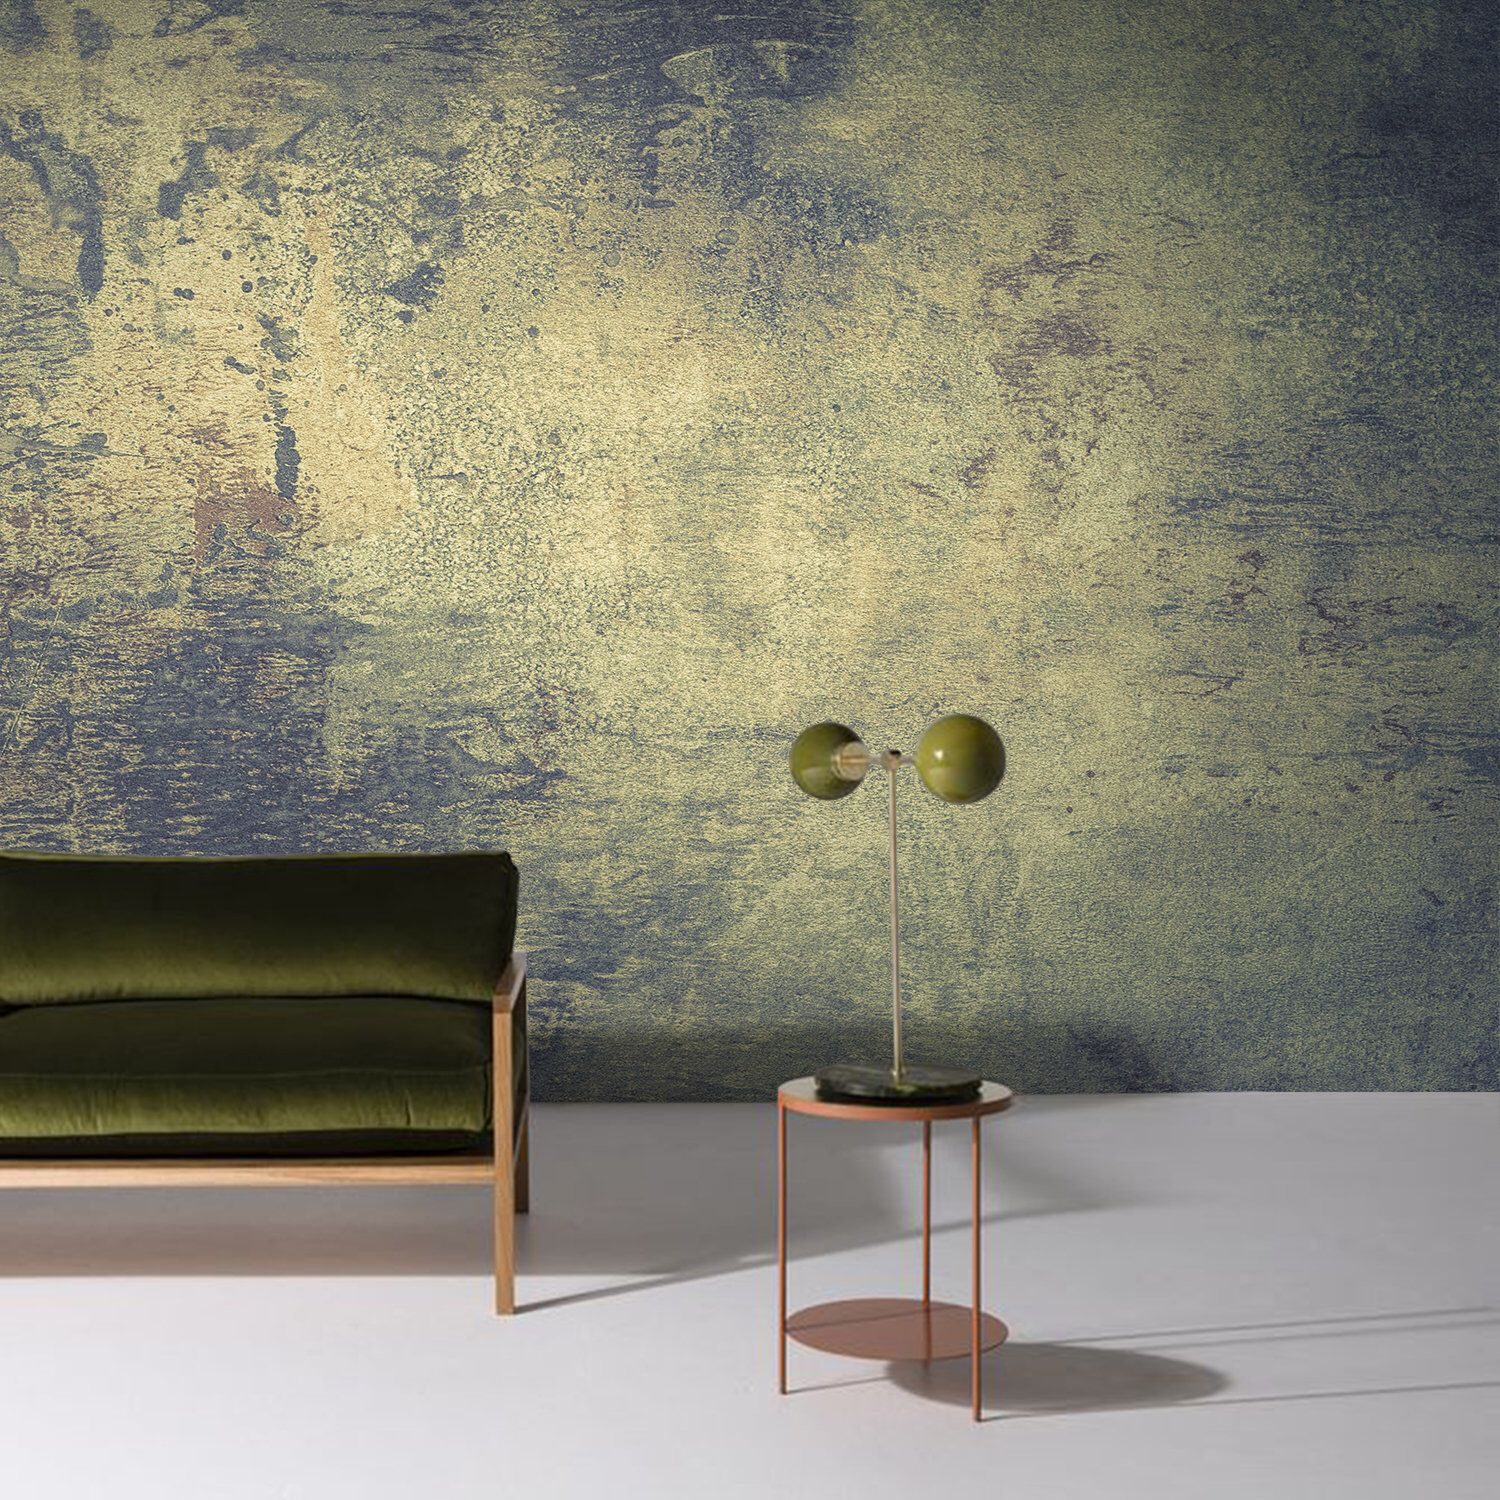 Dark Grunge Wall Mural Peel And Stick Wallpaper Green And Etsy Yellow Decor Peel And Stick Wallpaper Cement Walls